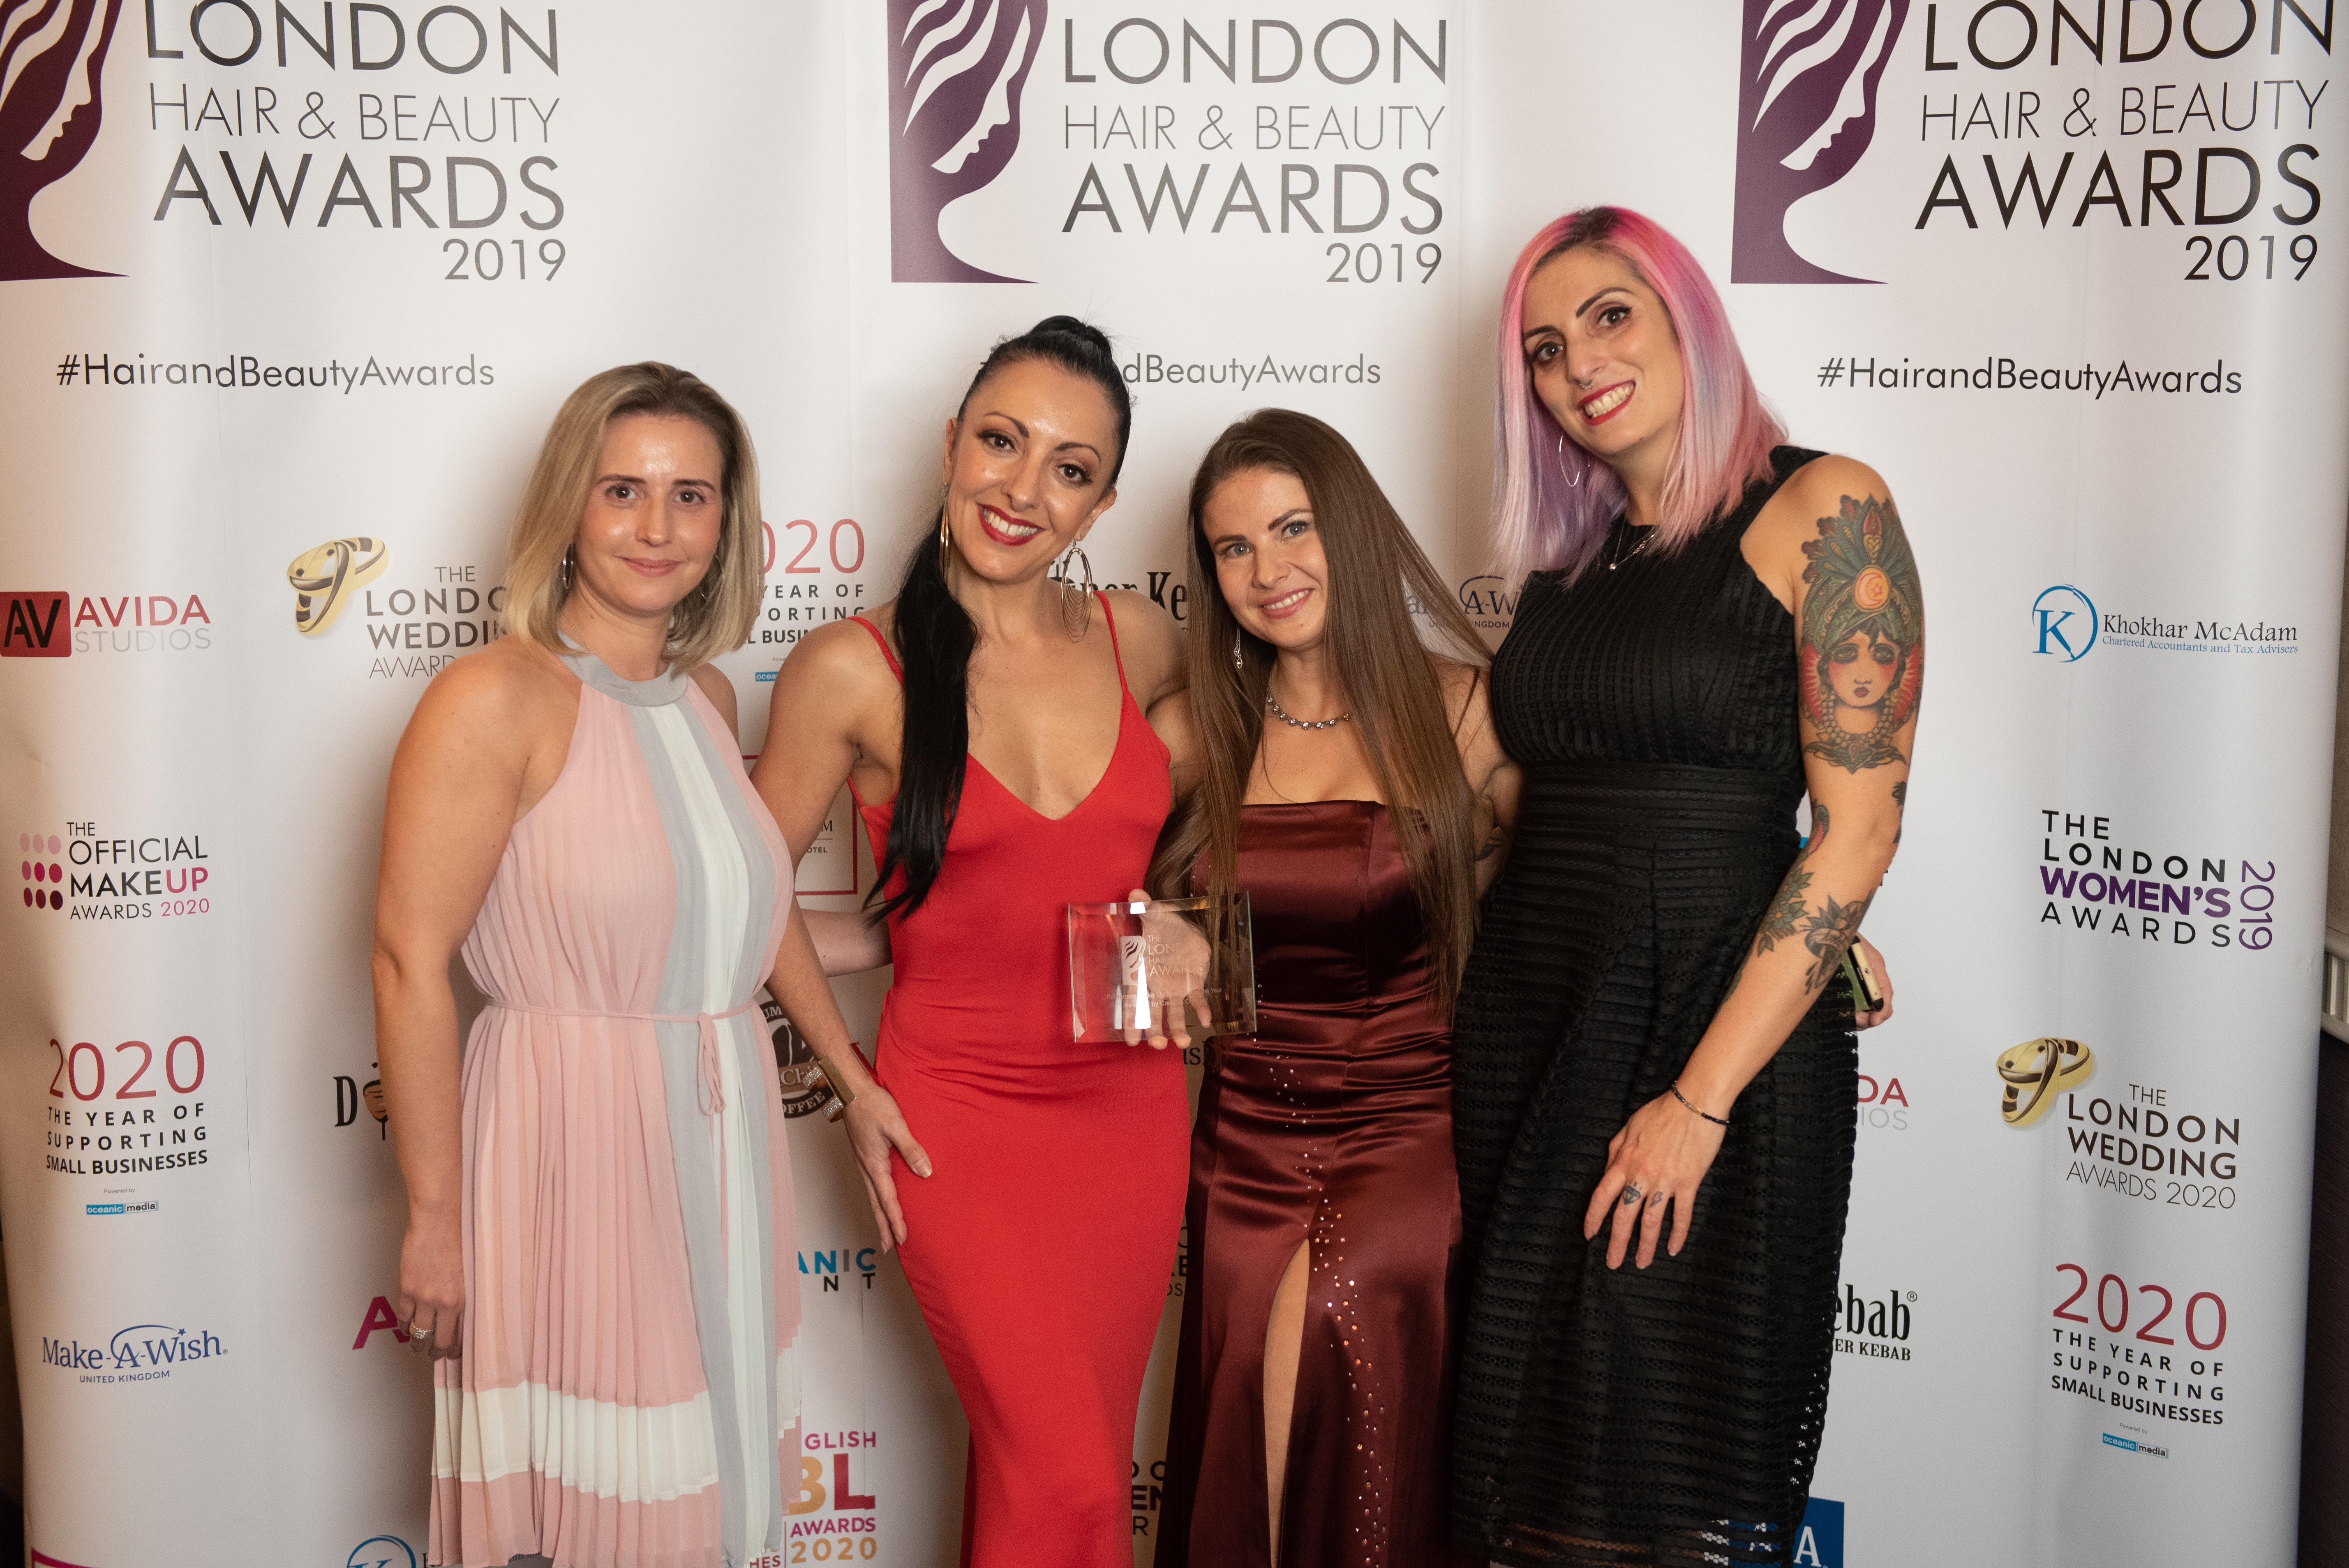 El Truchan winner of London Hair&Beauty